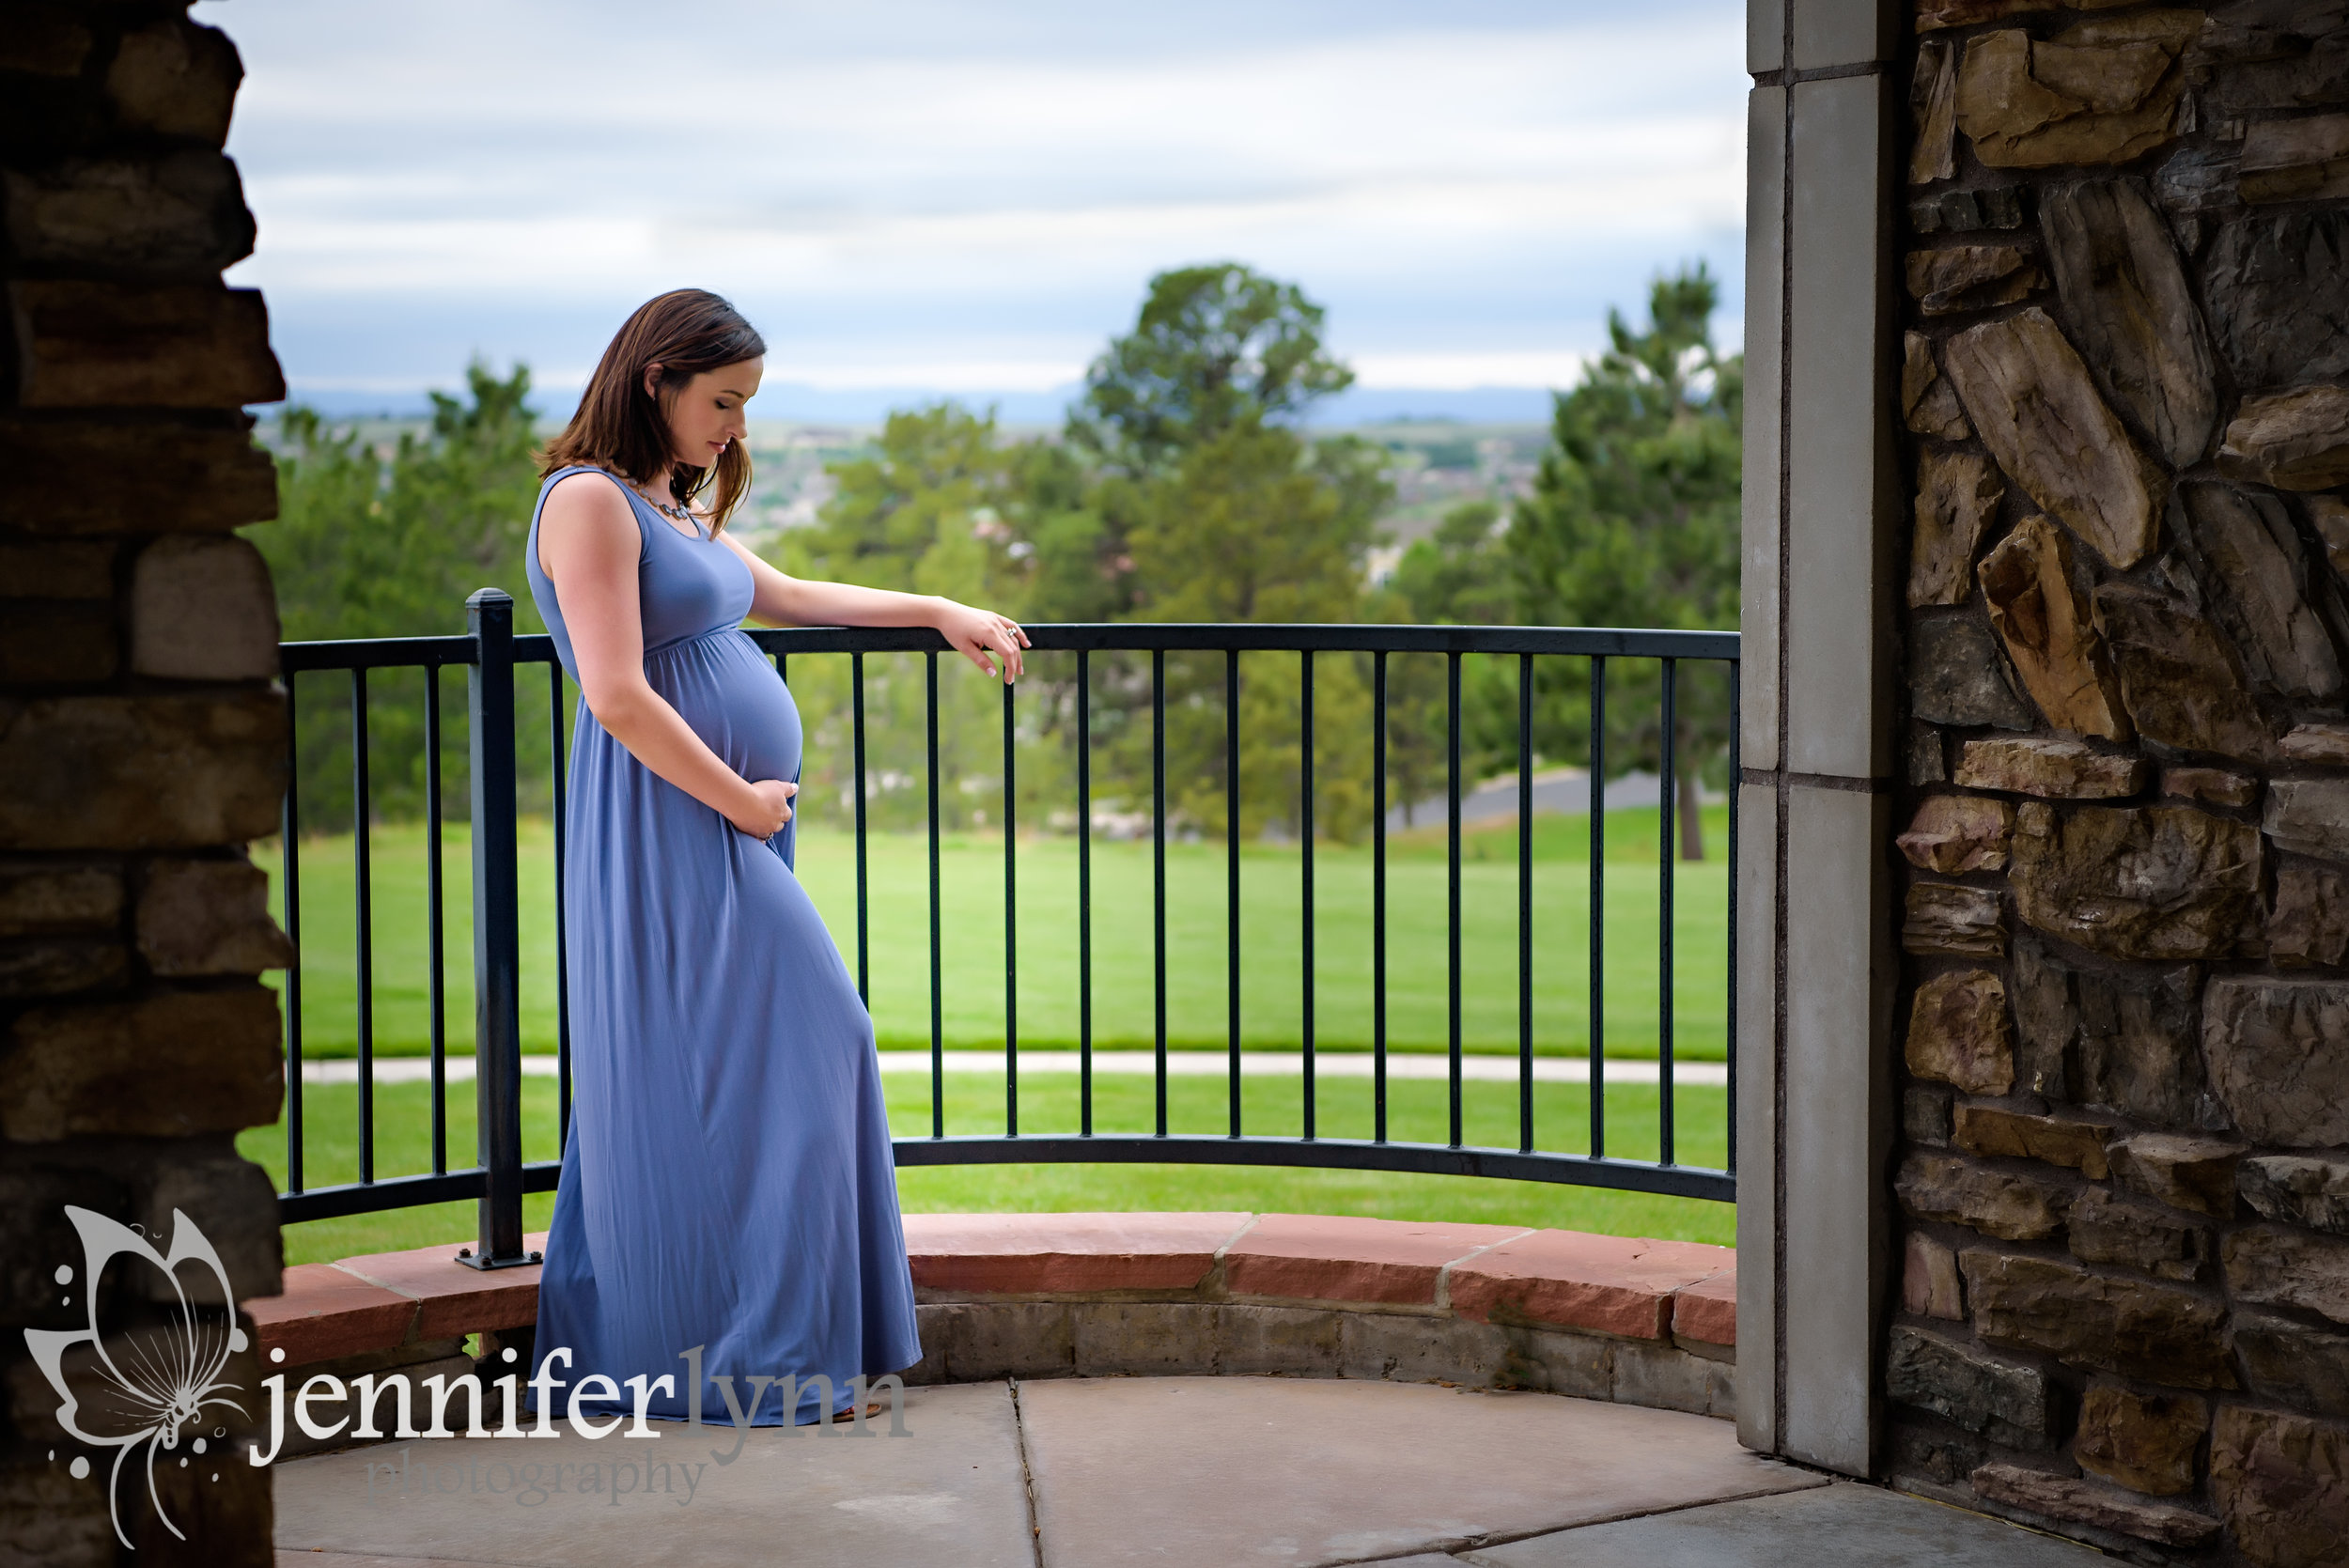 Intimate Maternity Moment Railing Outlook